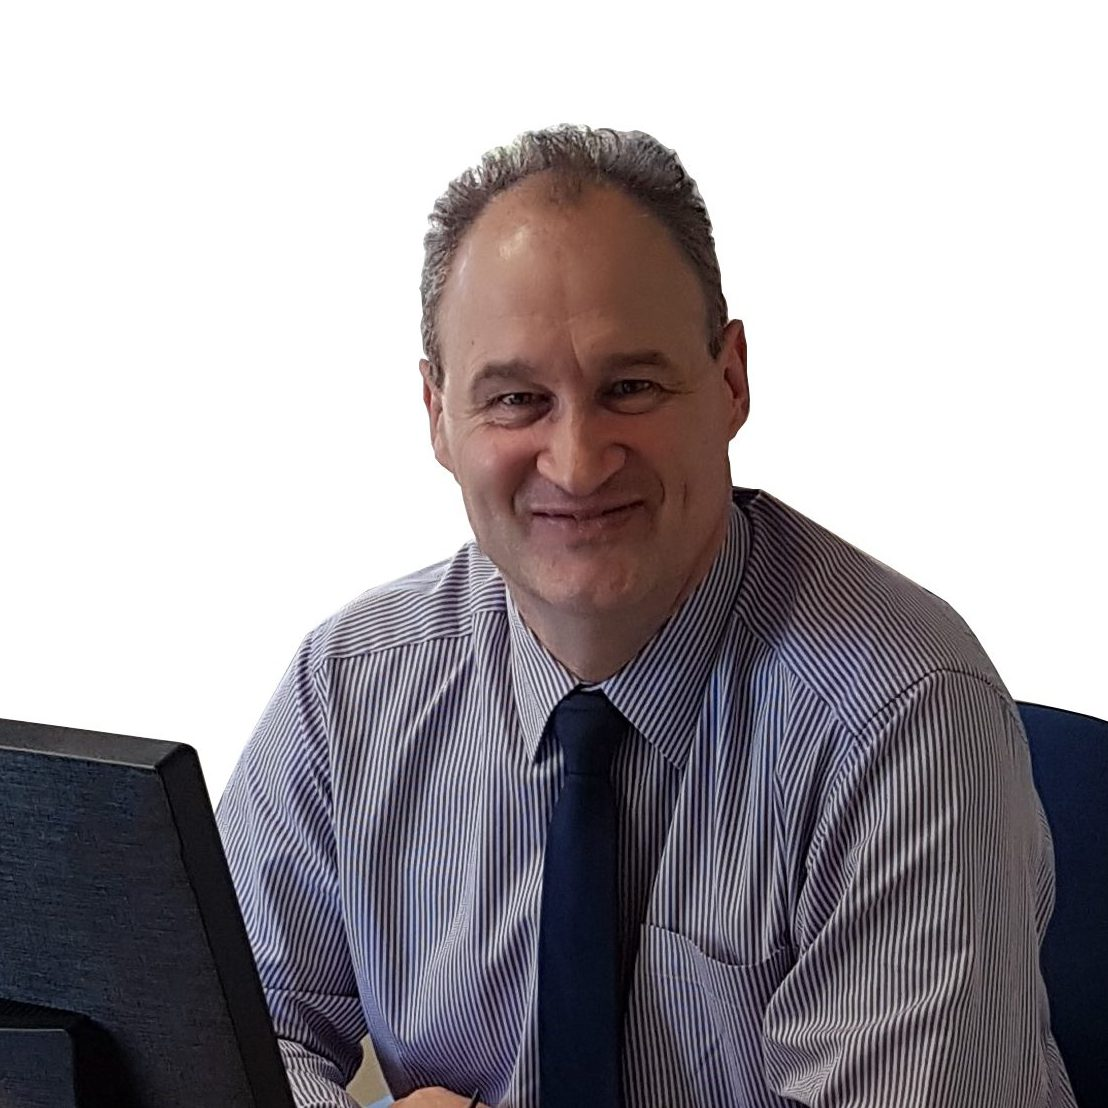 David Sargent – Chief Executive Officer